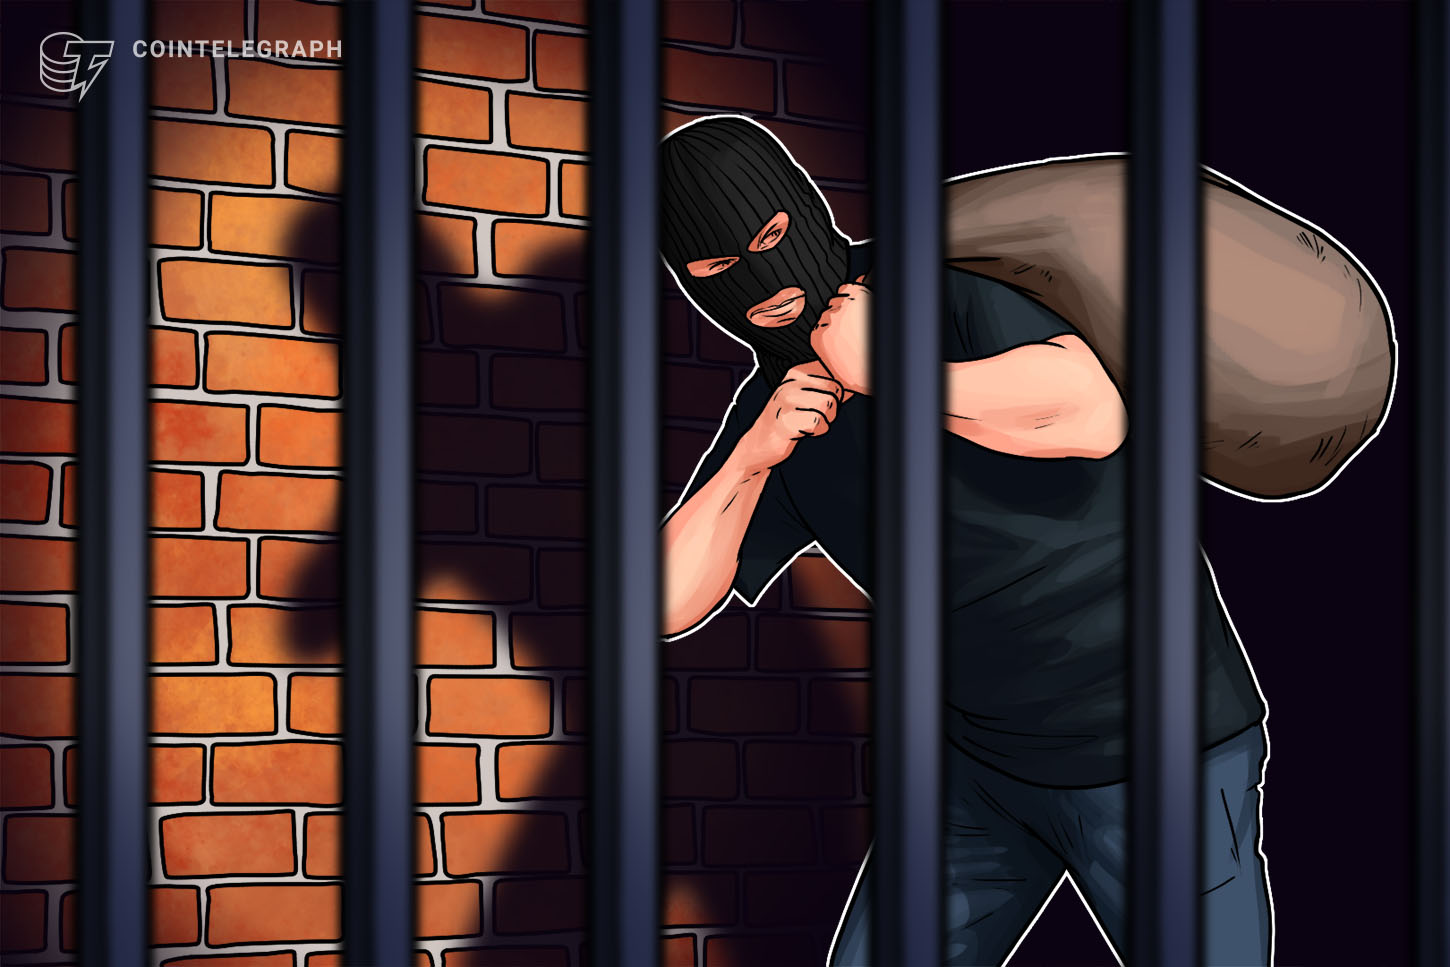 Russian man gets three-year sentence for stealing a friend's mining rig